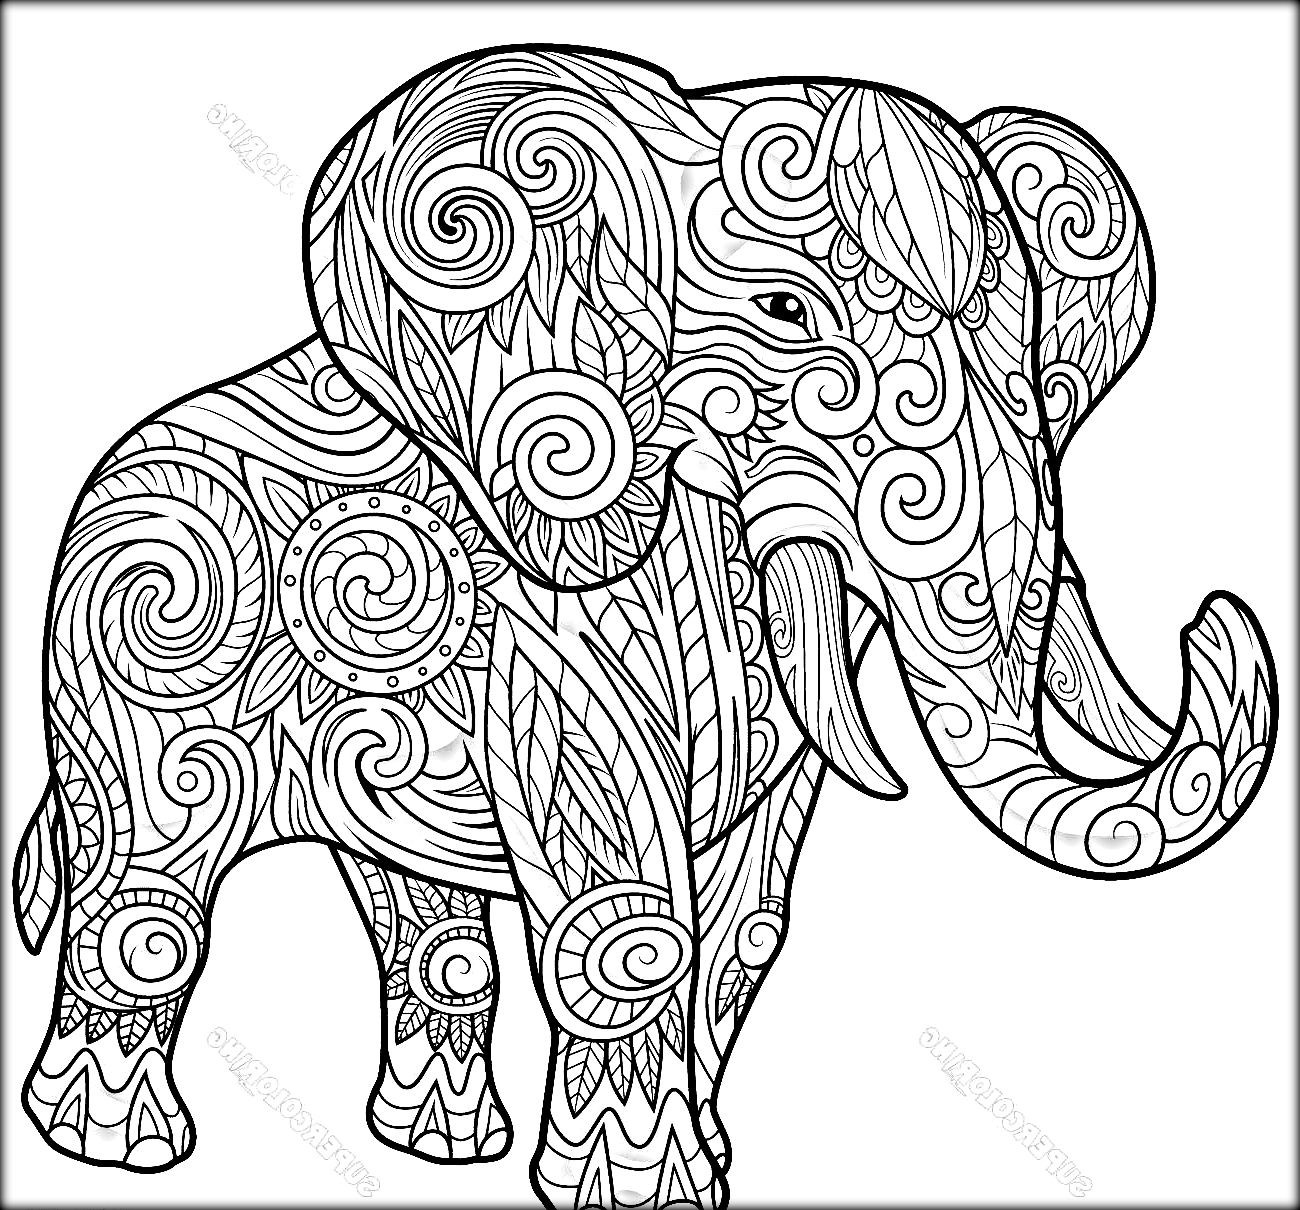 Elephant Coloring Book For Adults  Elephant Coloring Pages coloringsuite